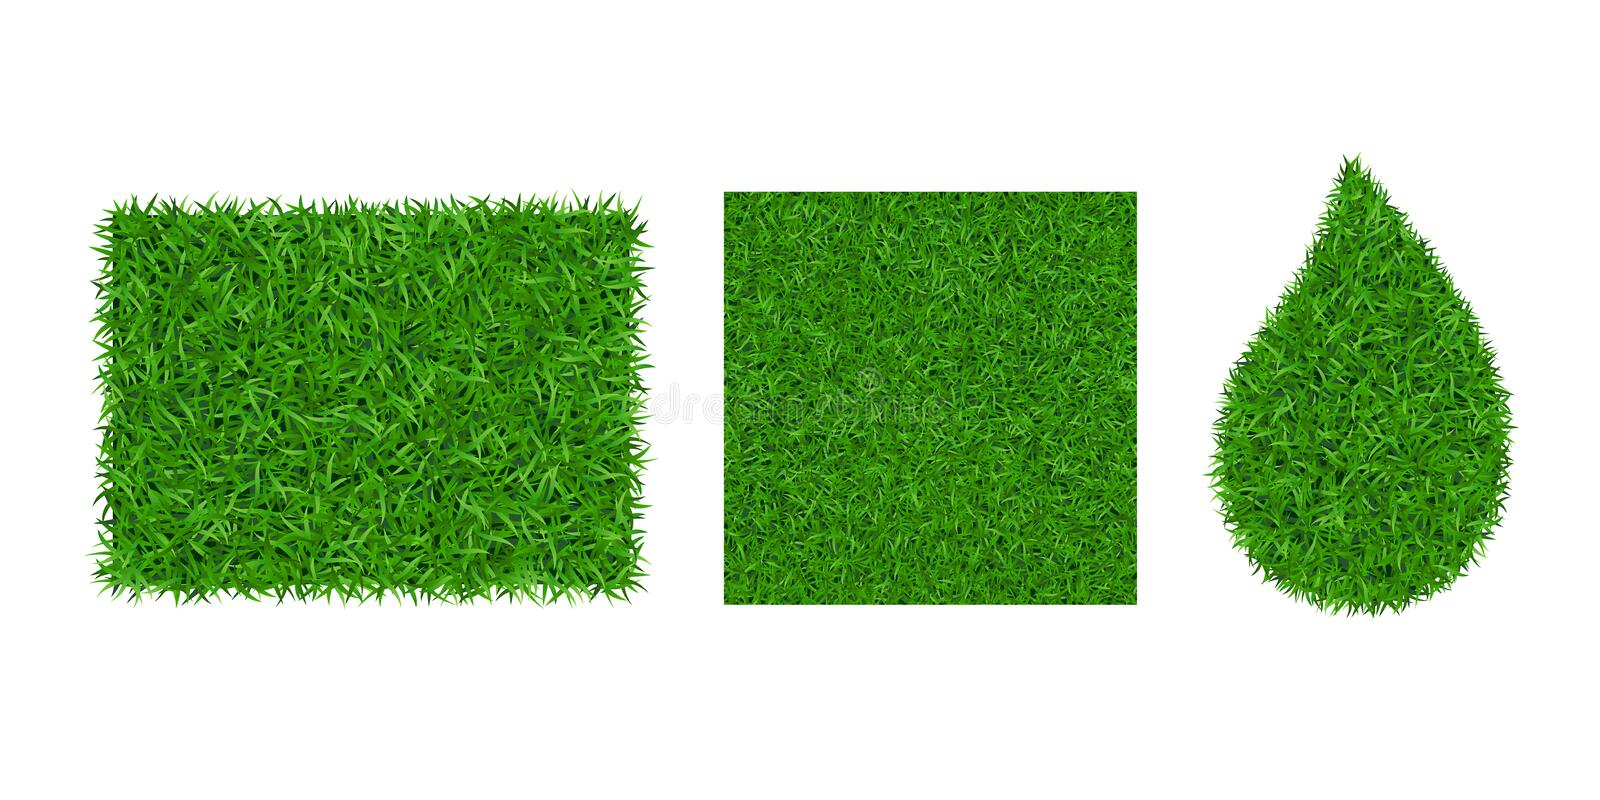 Green grass background 3D set. Lawn greenery nature drop, frame, seamless pattern isolated on white. Field texture. Square, rectangle, droplet. Landscape stock illustration